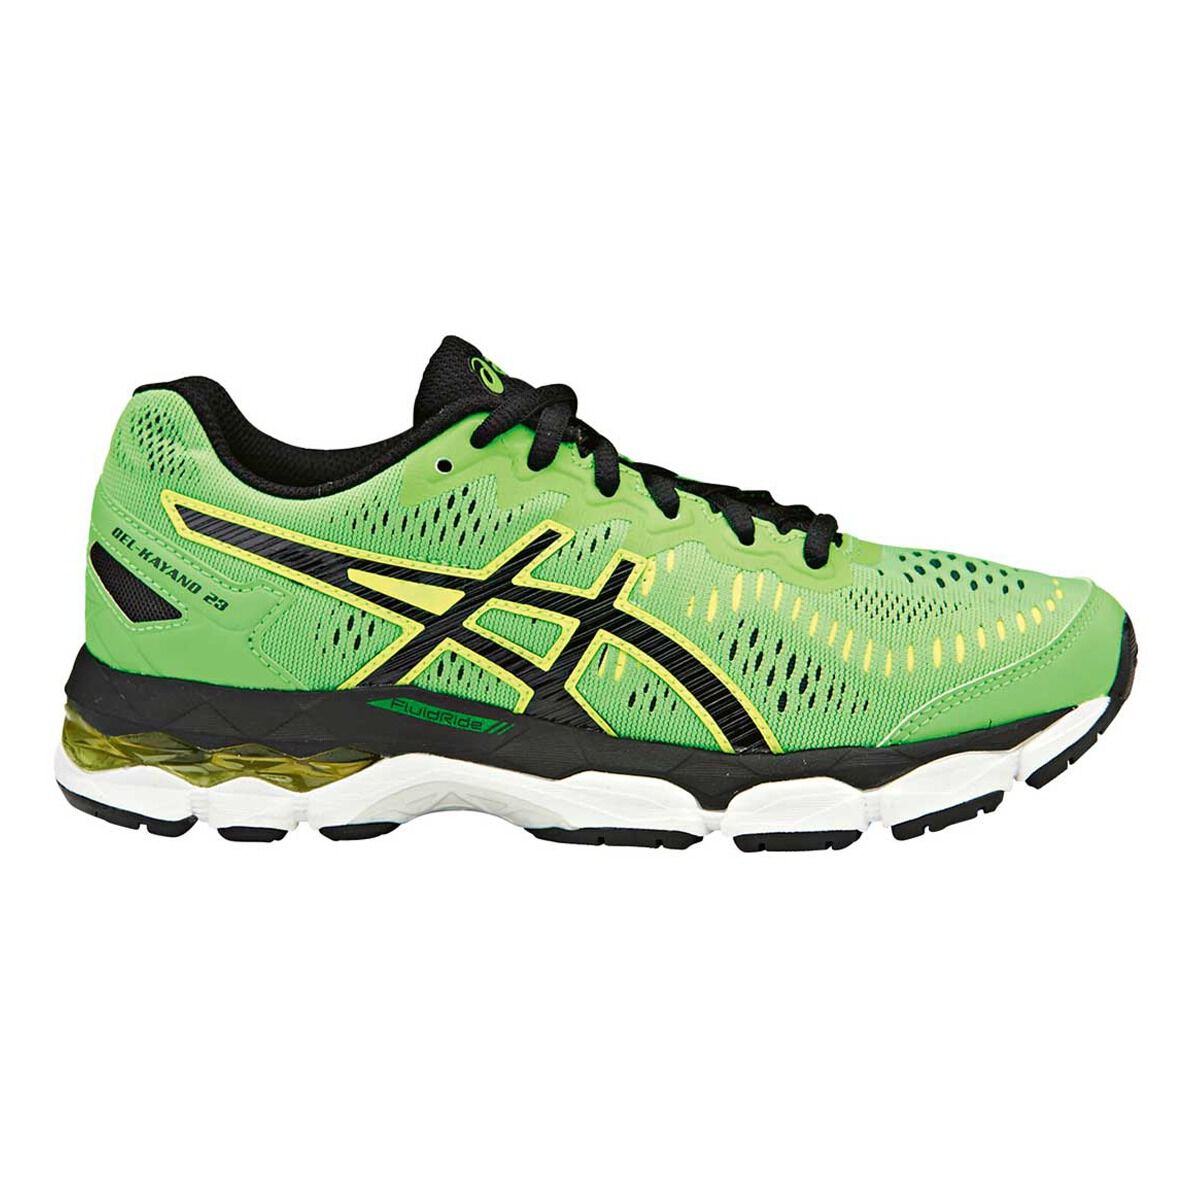 Shoes Gel Green Boys Asics 5Rebel 23 Black Us Running Kayano Sport tdCrhQsx